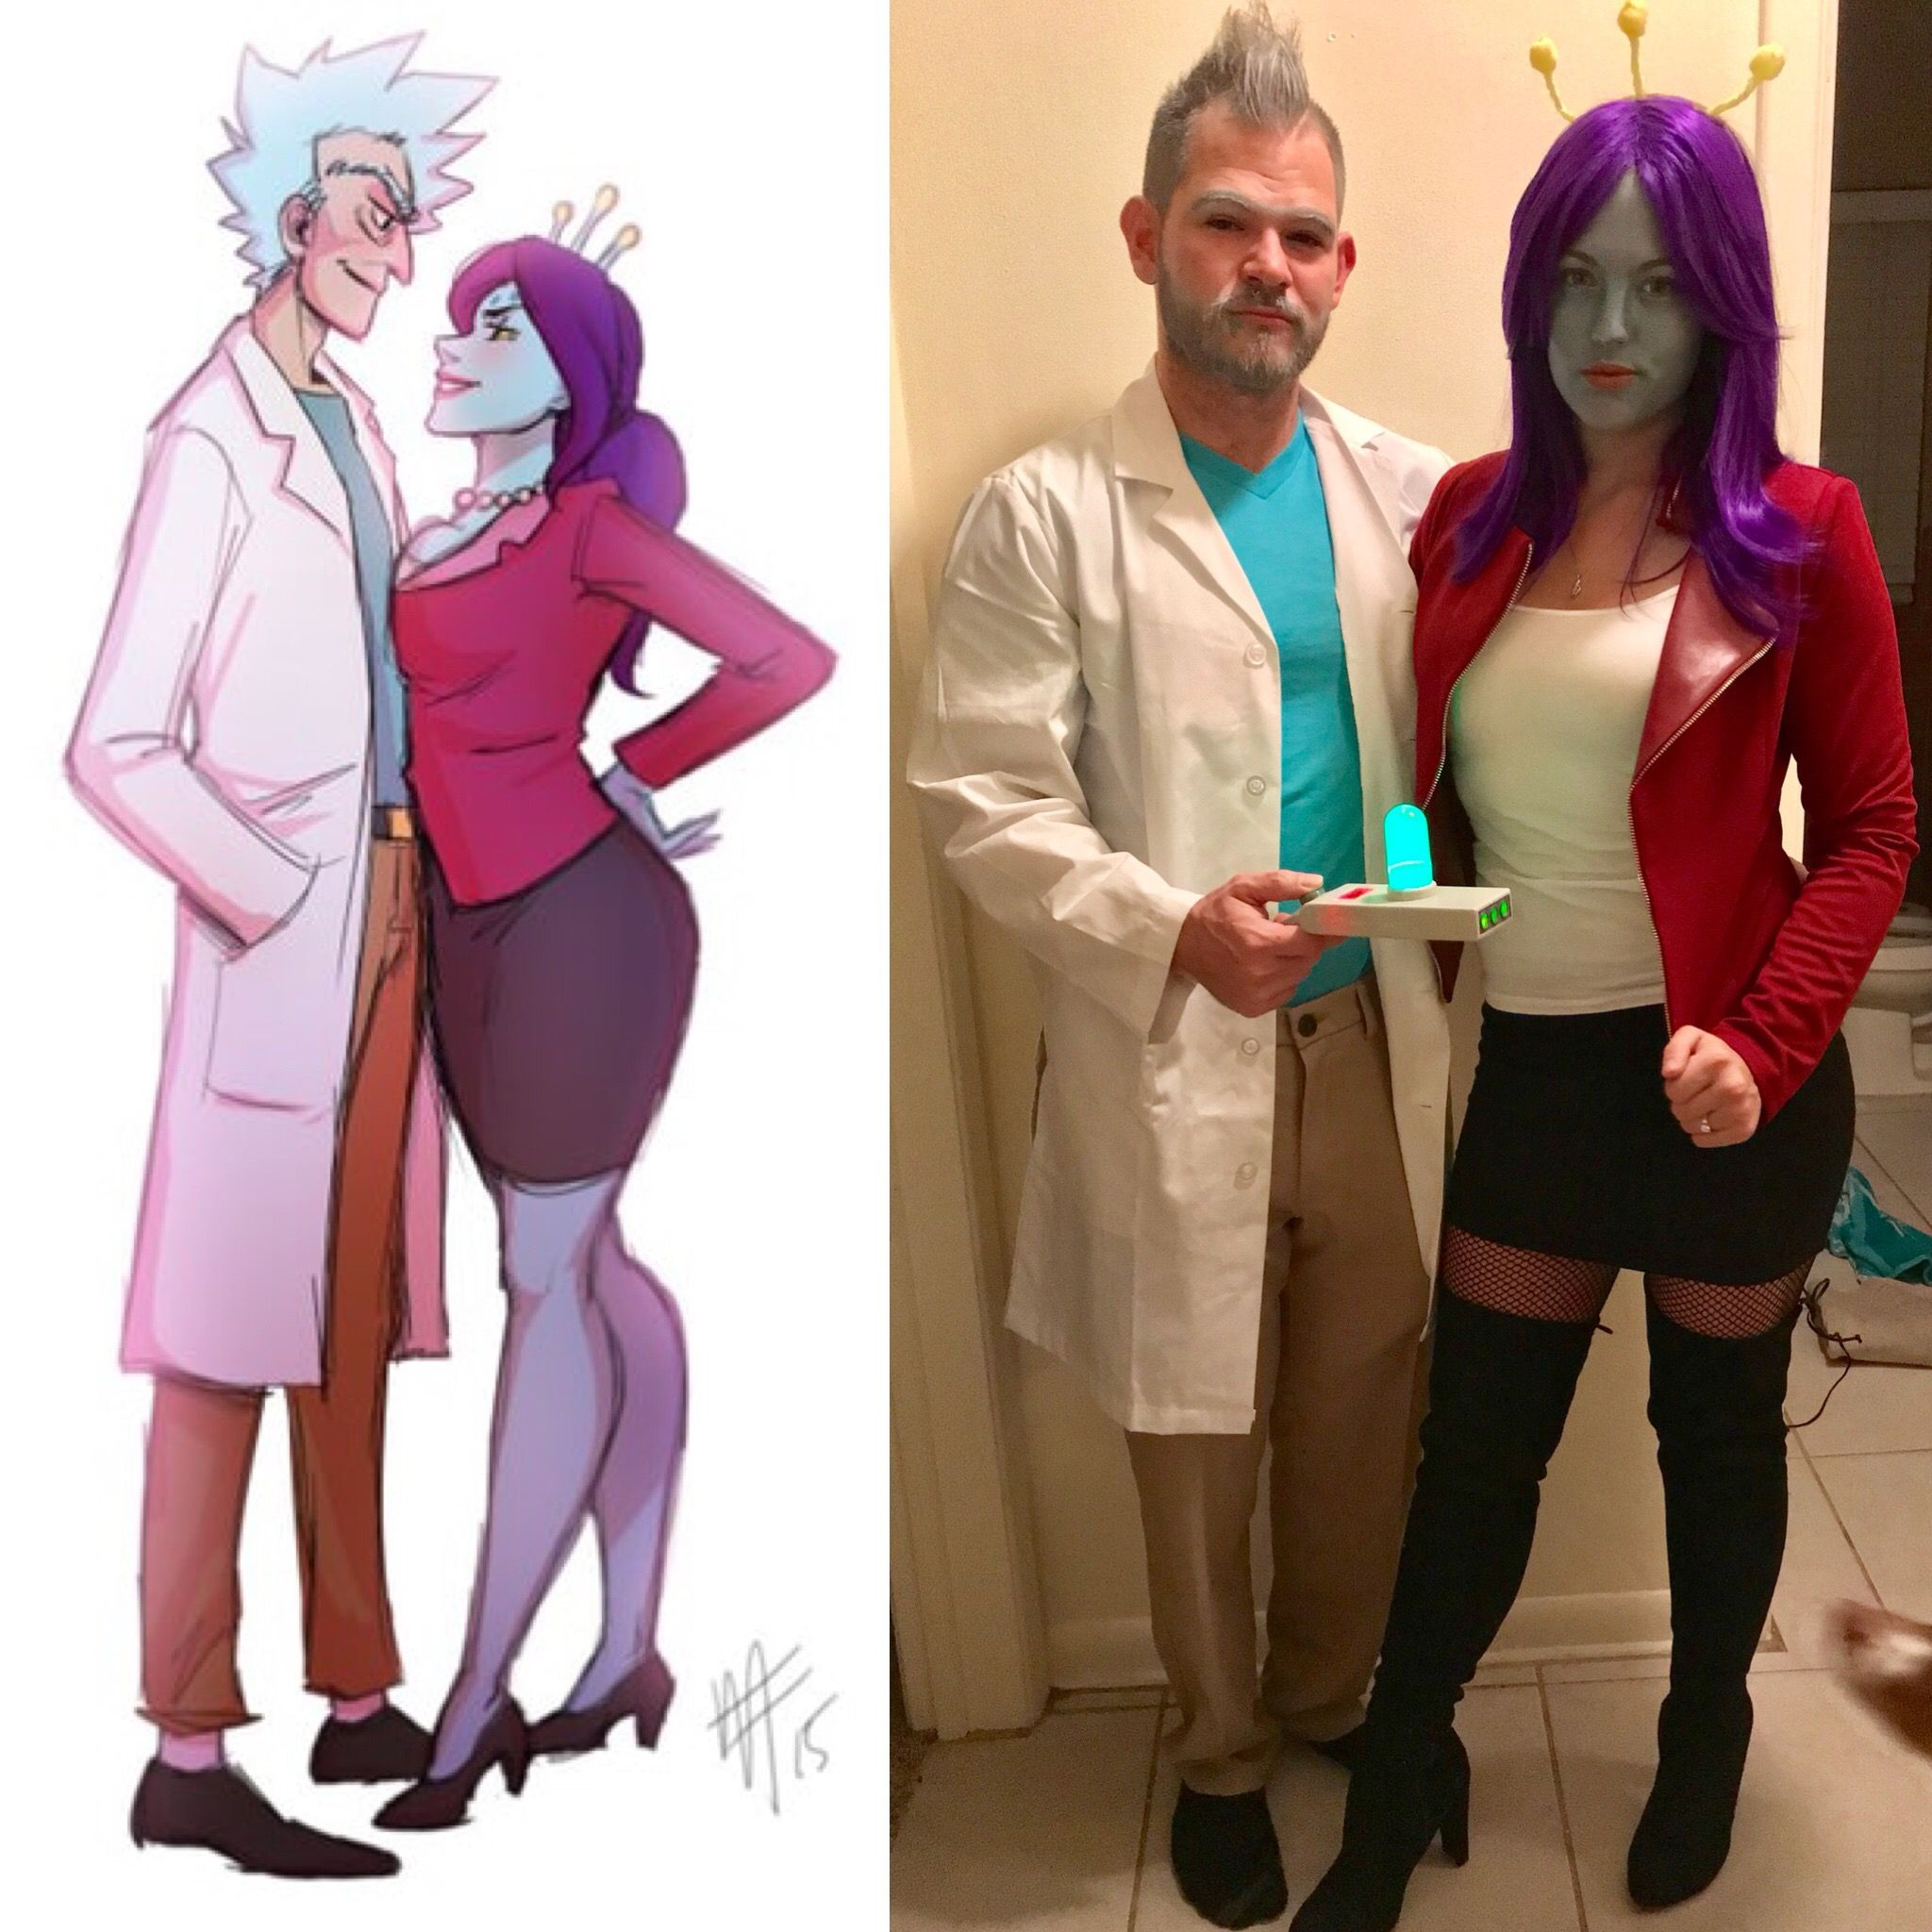 Adult swim costume